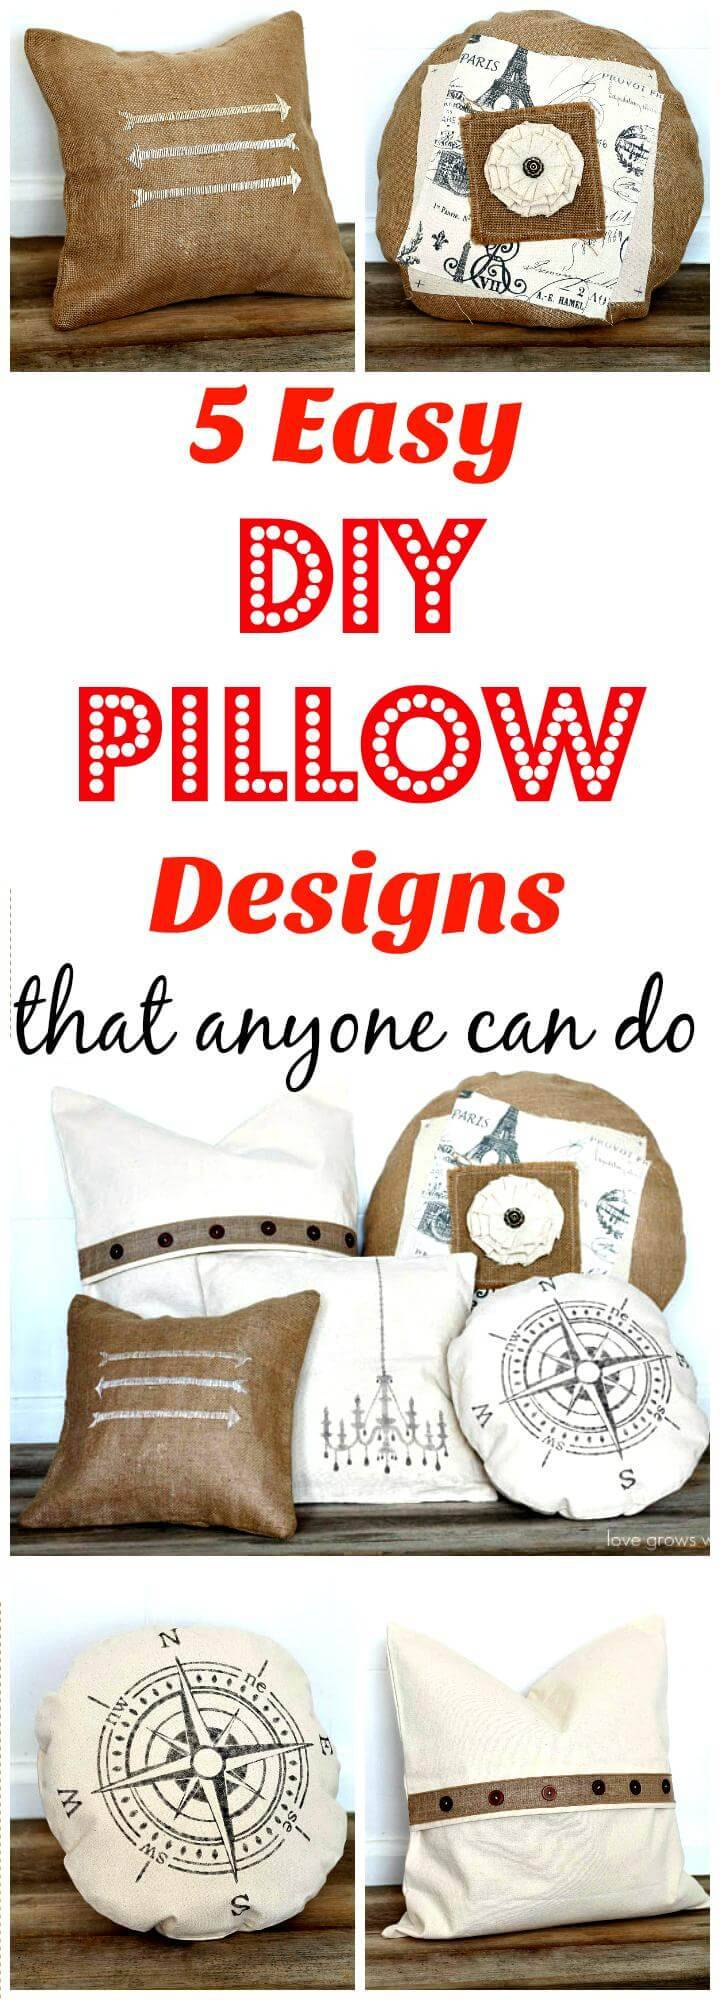 5 easy DIY pillow designs that anyone can do